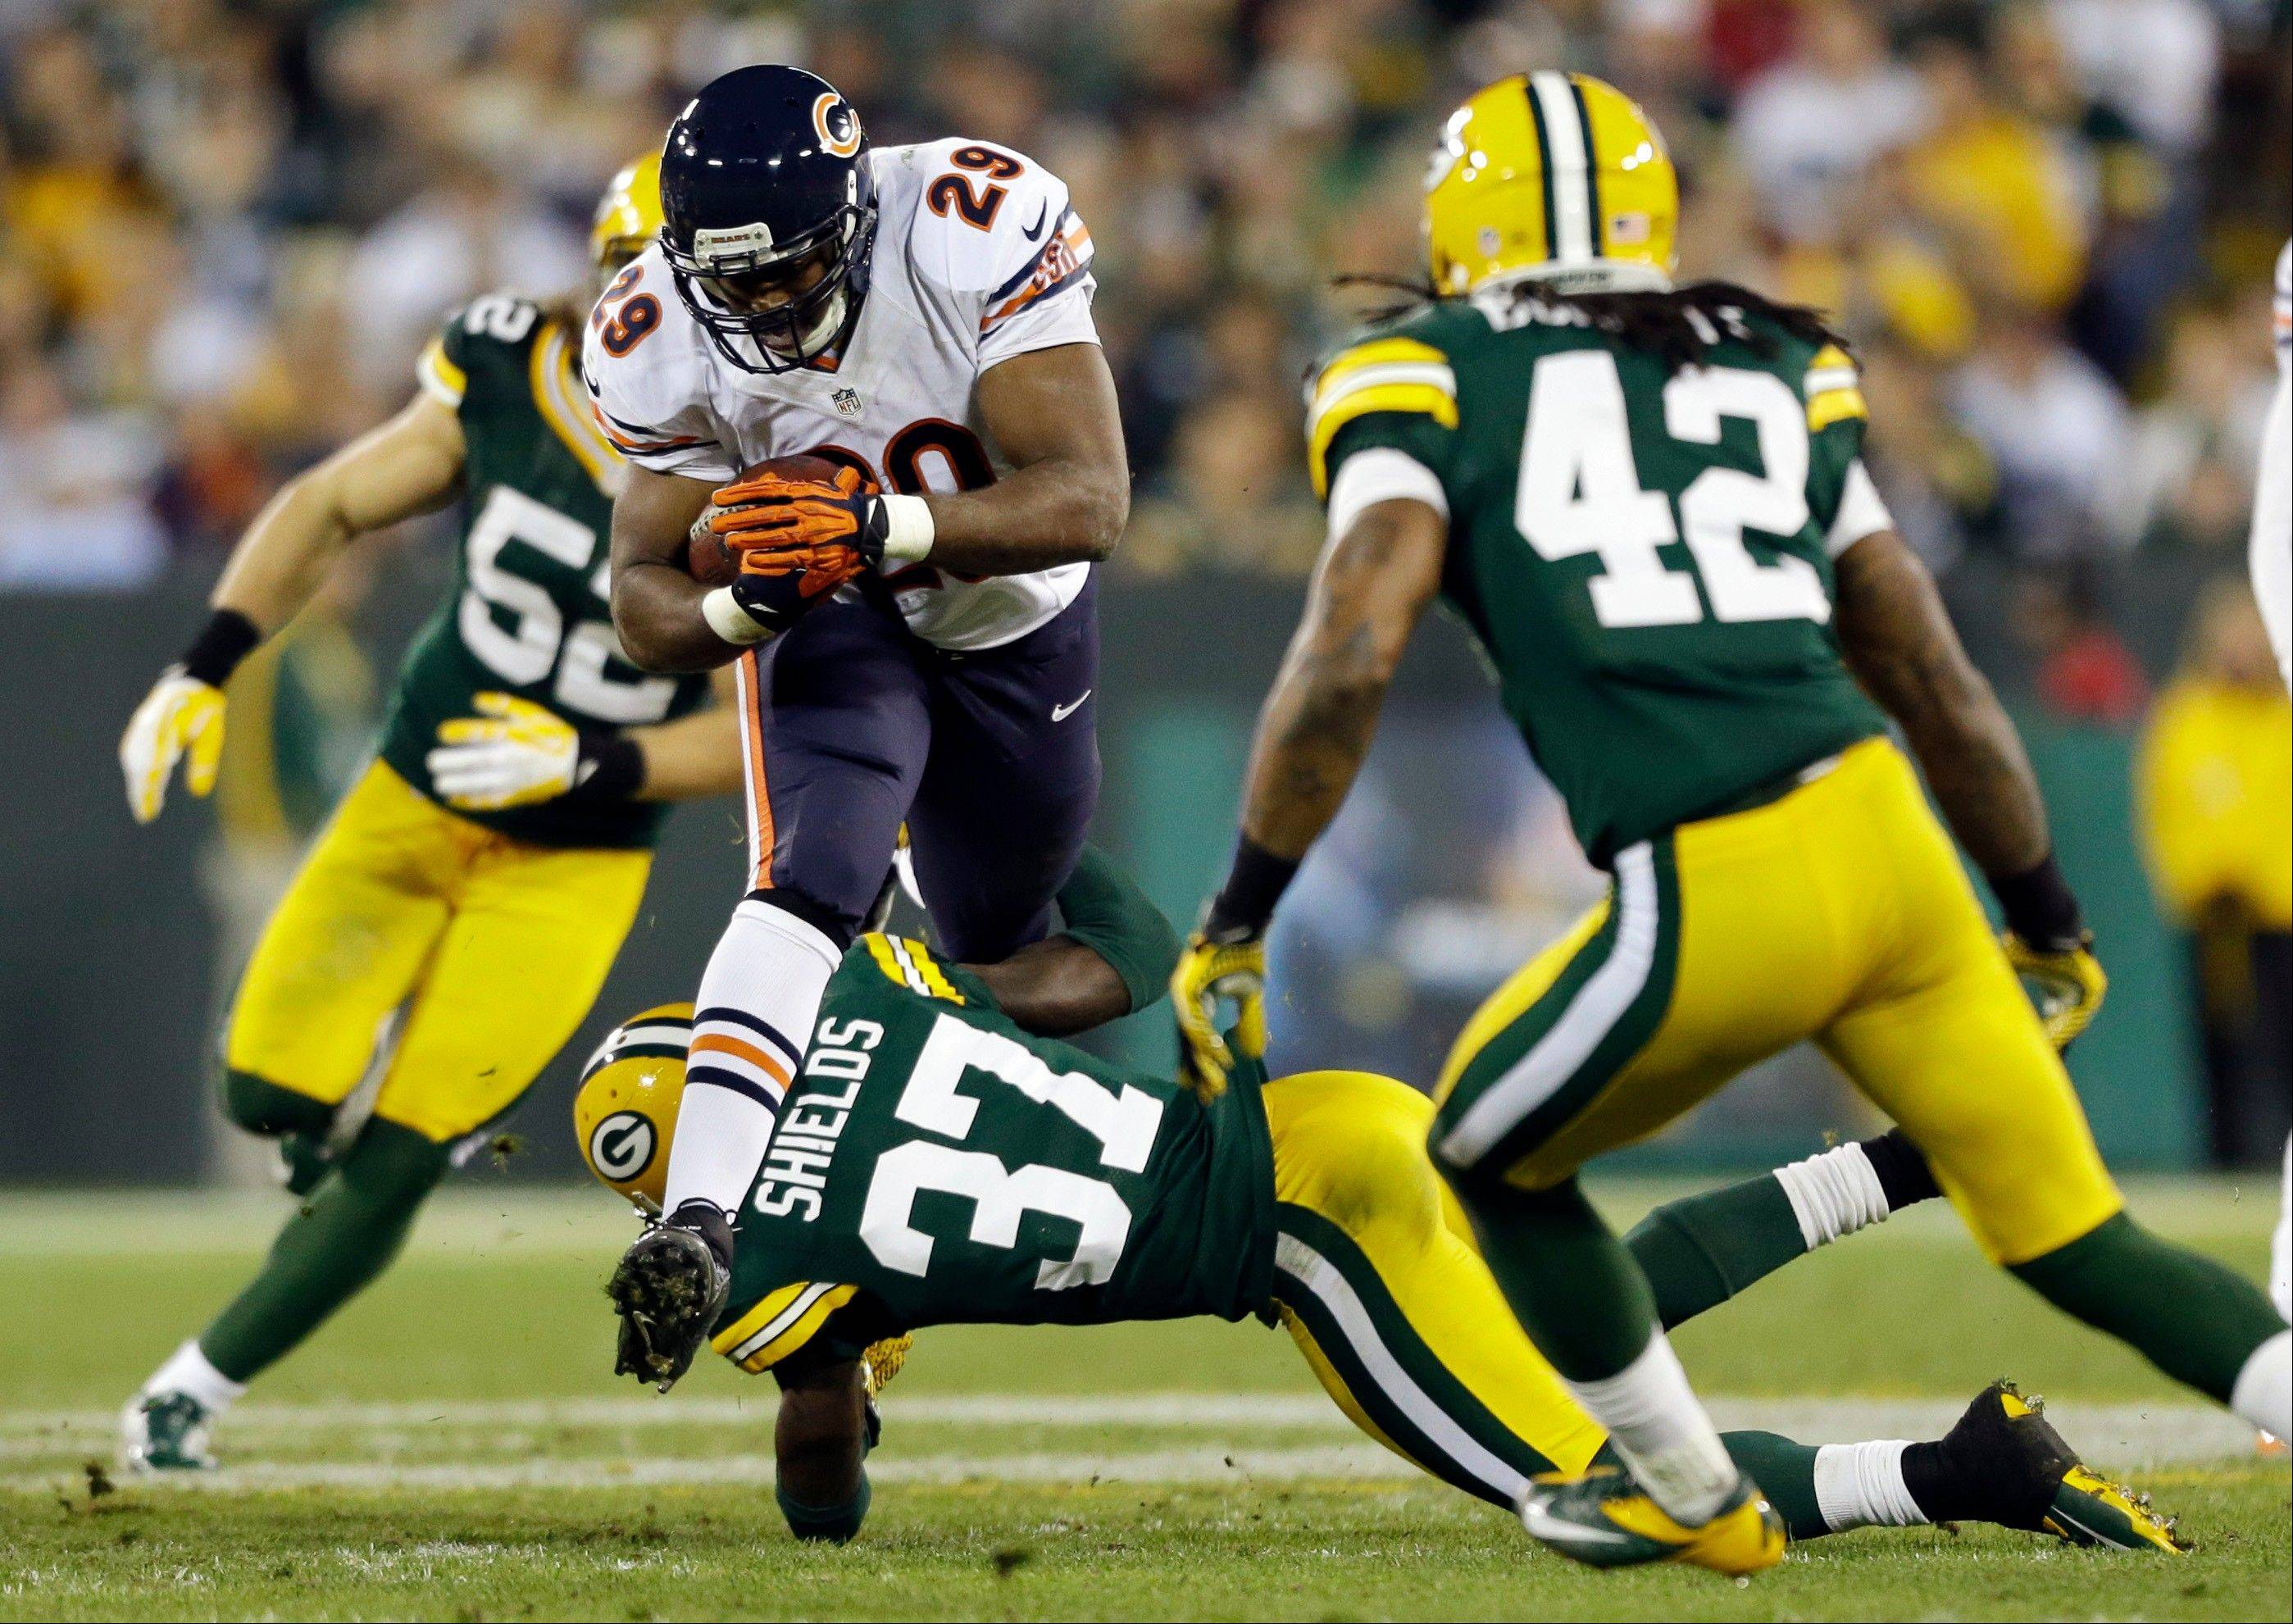 Chicago Bears' Michael Bush runs during the second half.